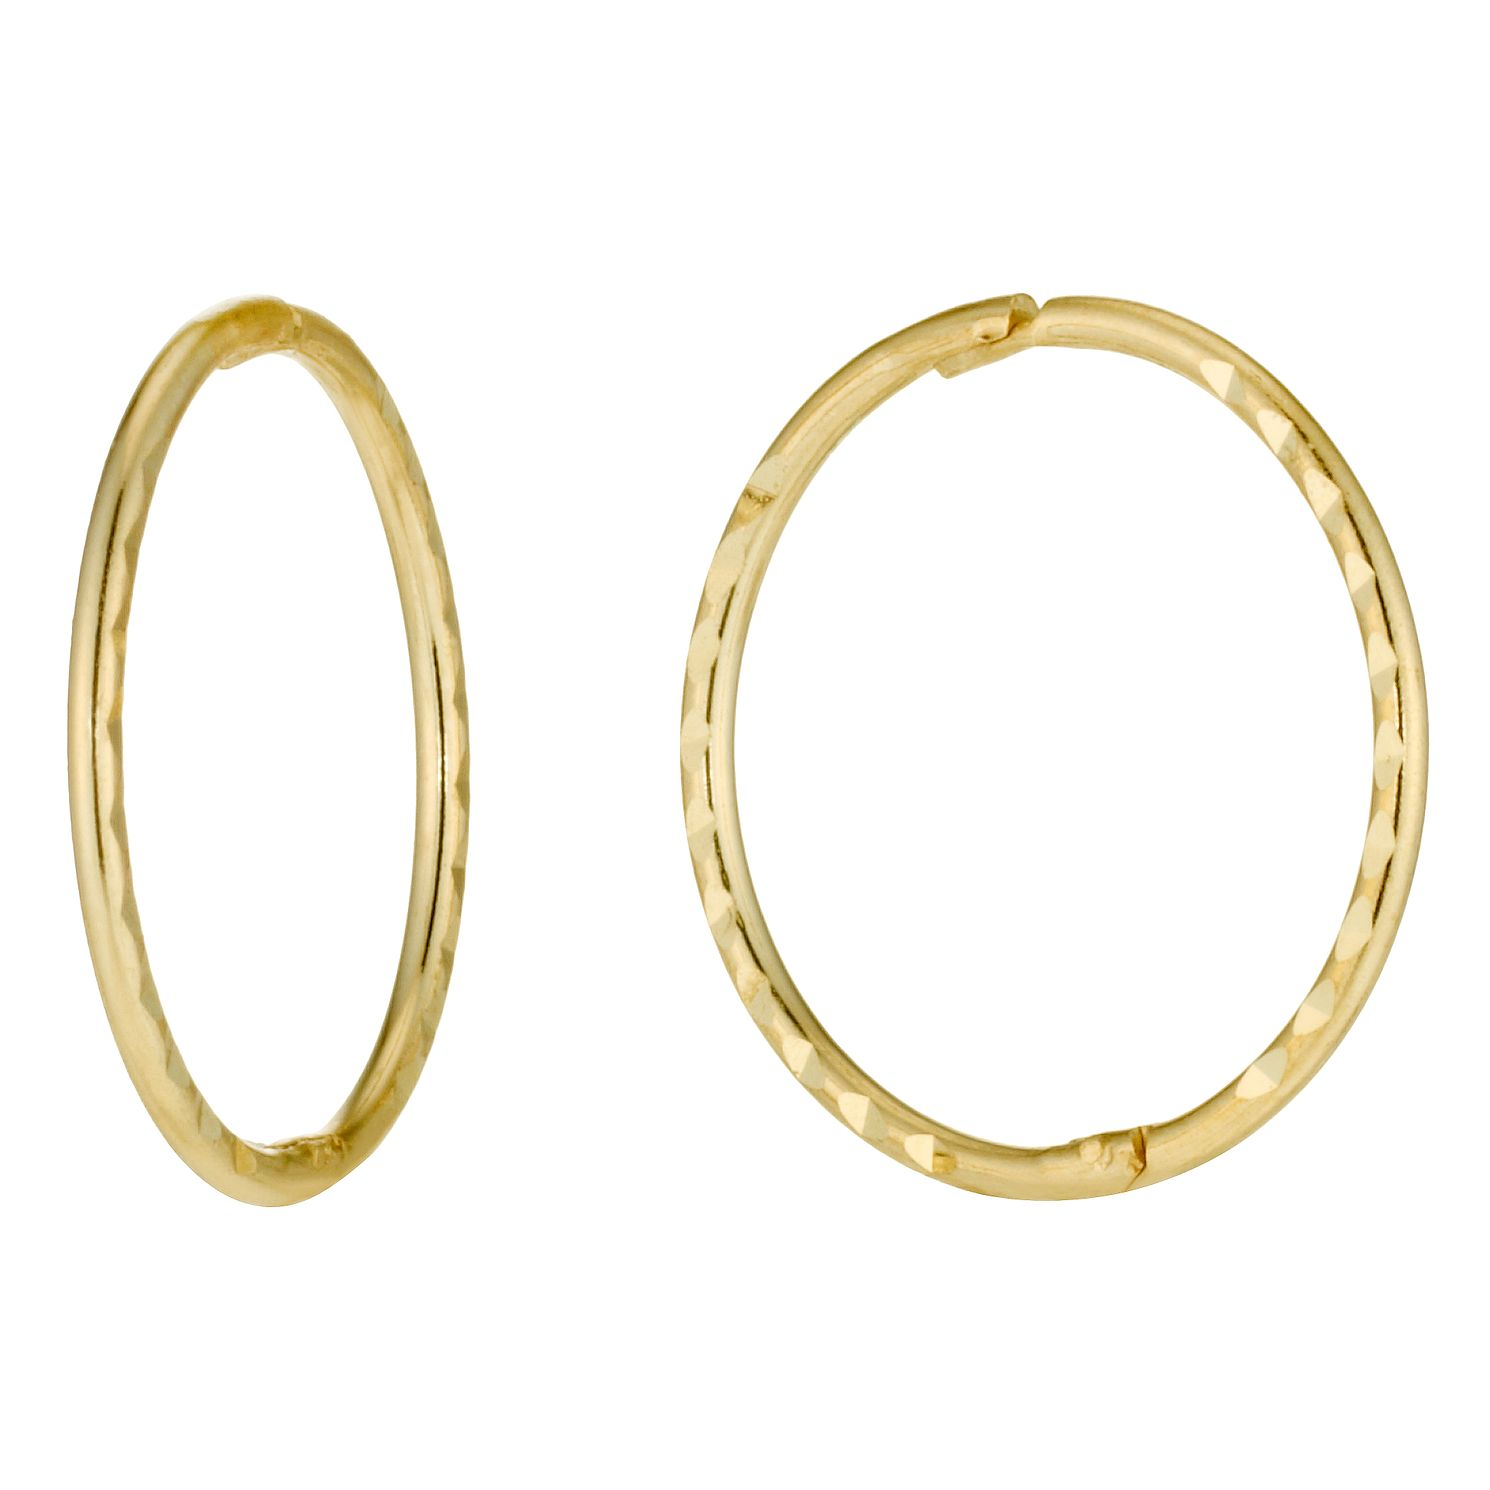 accessories jewellery whistles earring gold women sale tube hoop earrings medium mini